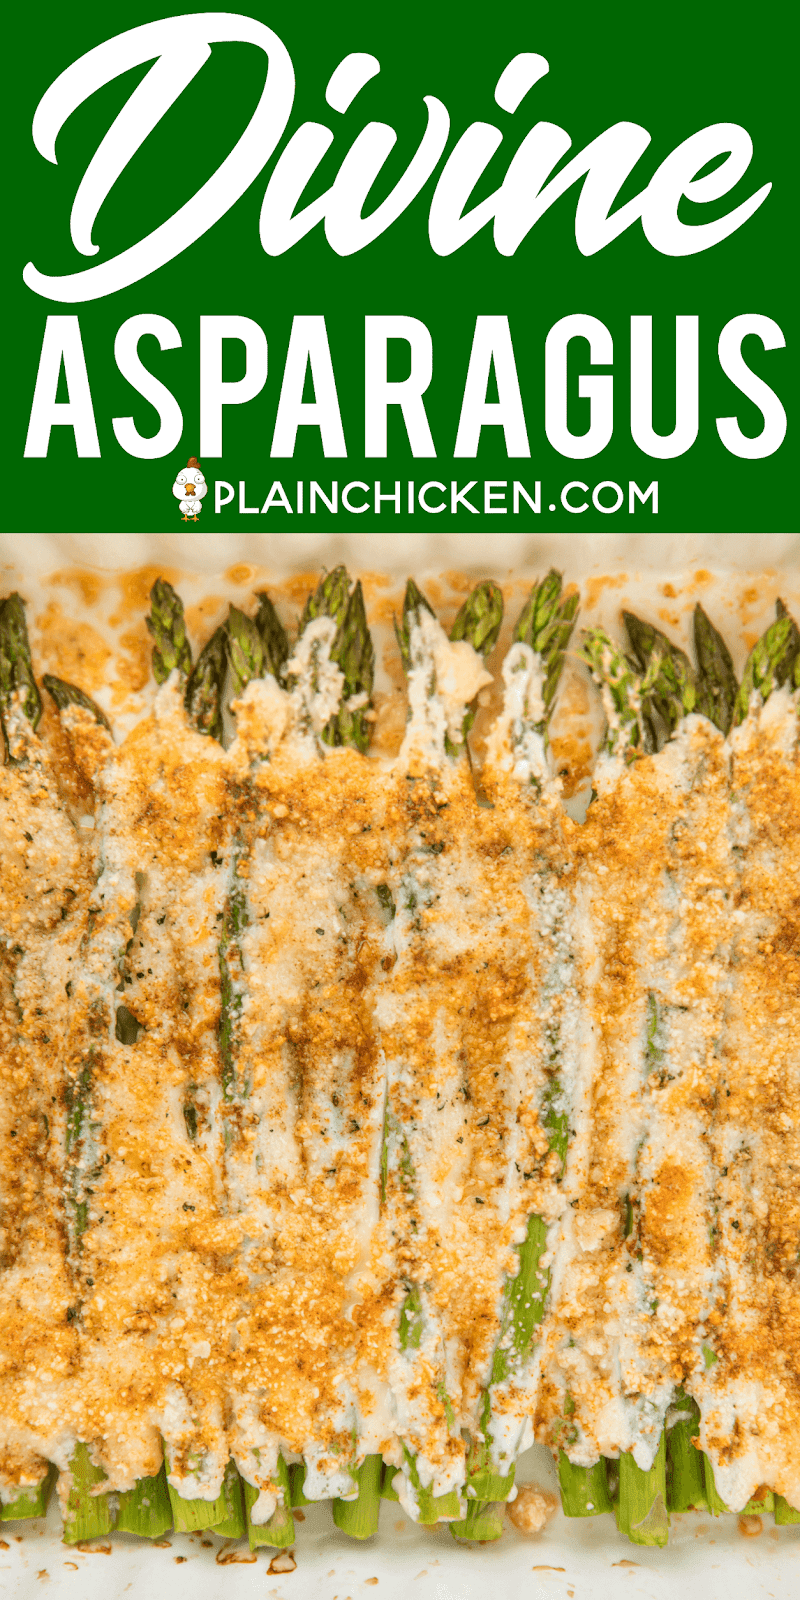 Divine Asparagus - only 4 ingredients! Asparagus, mayonnaise, parmesan cheese and paprika. Can add garlic salt too. Ready to eat in 20 minutes. We make this at least once a week! Our FAVORITE asparagus recipe!! #sidedish #asparagus #veggie